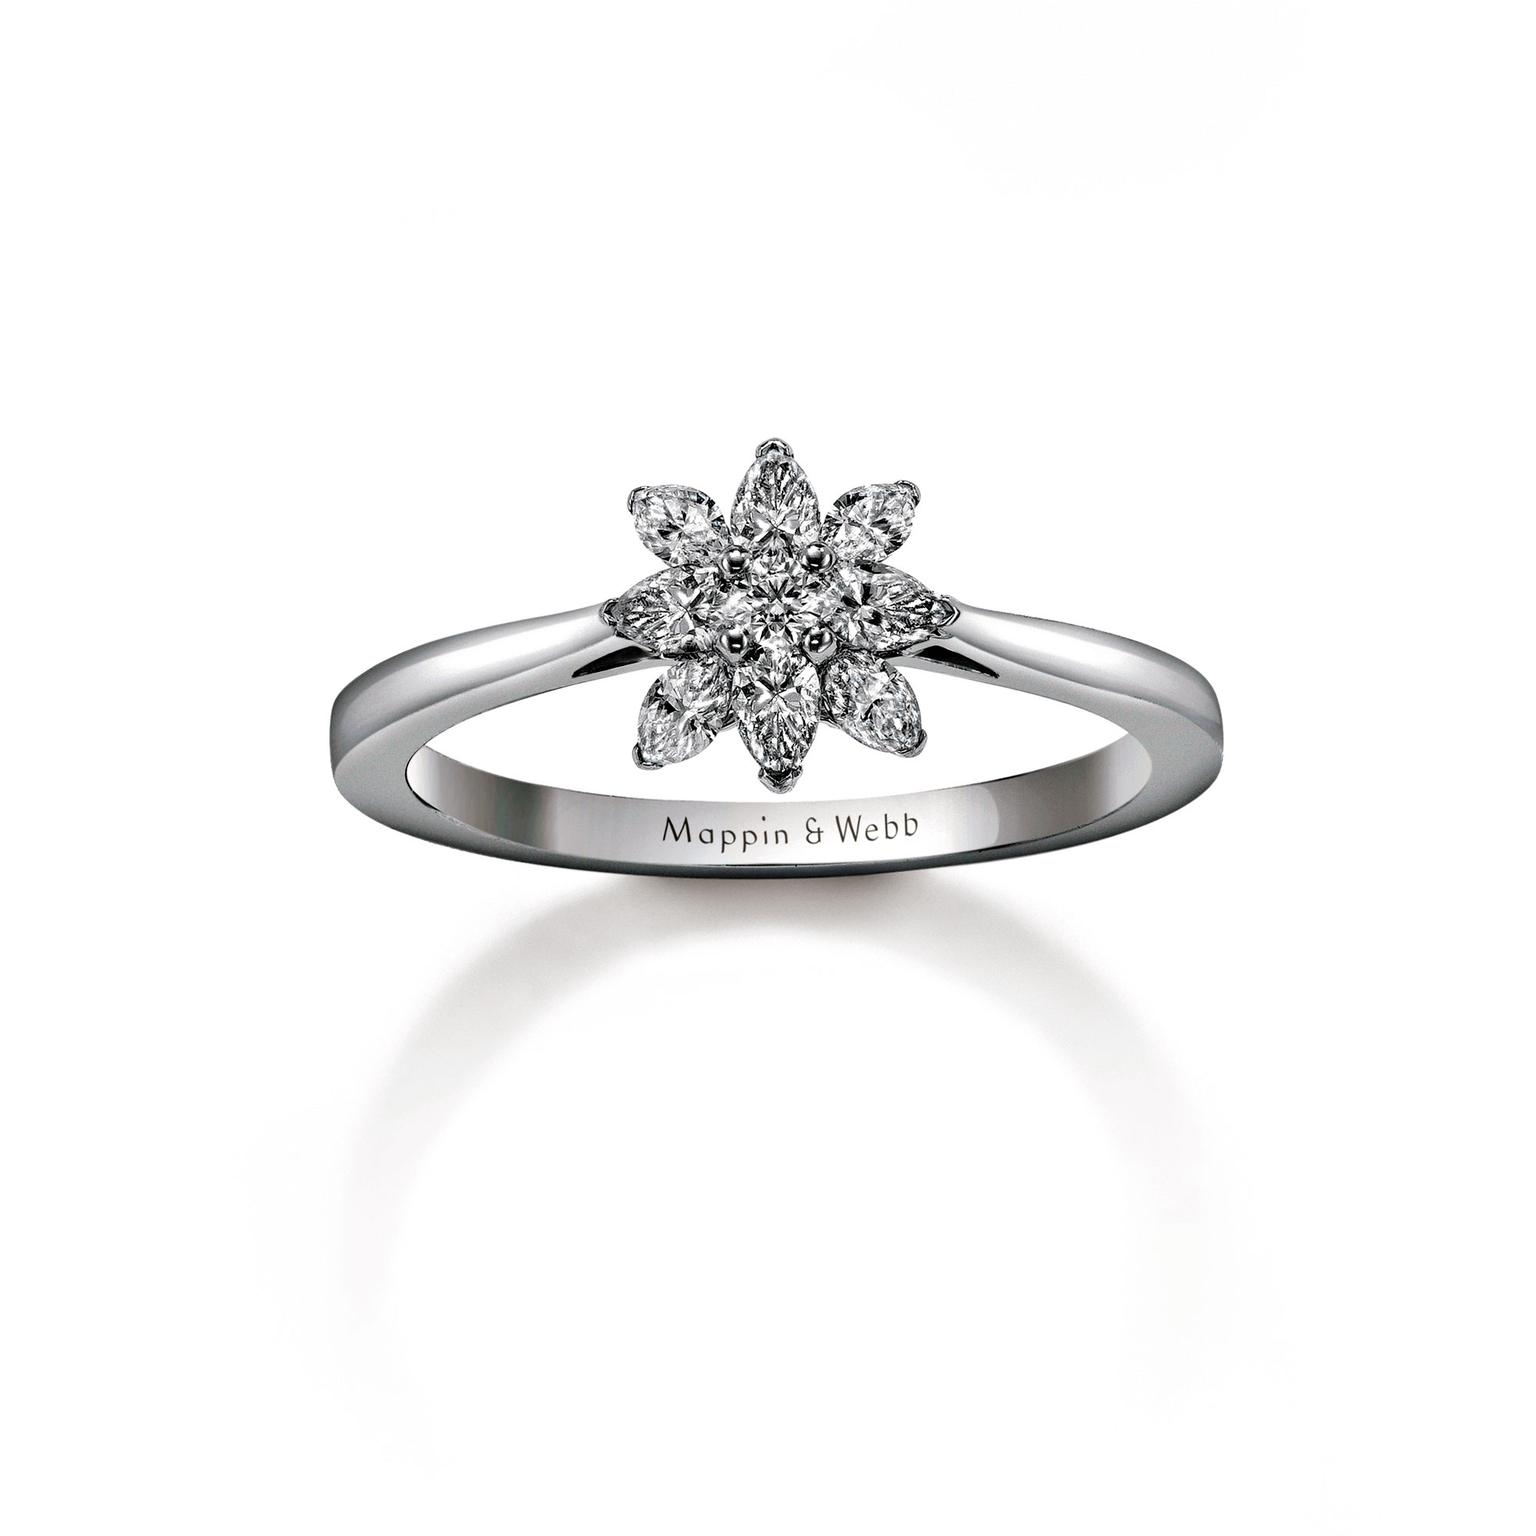 Mappin & Webb Aster ring with marquise-cut diamonds